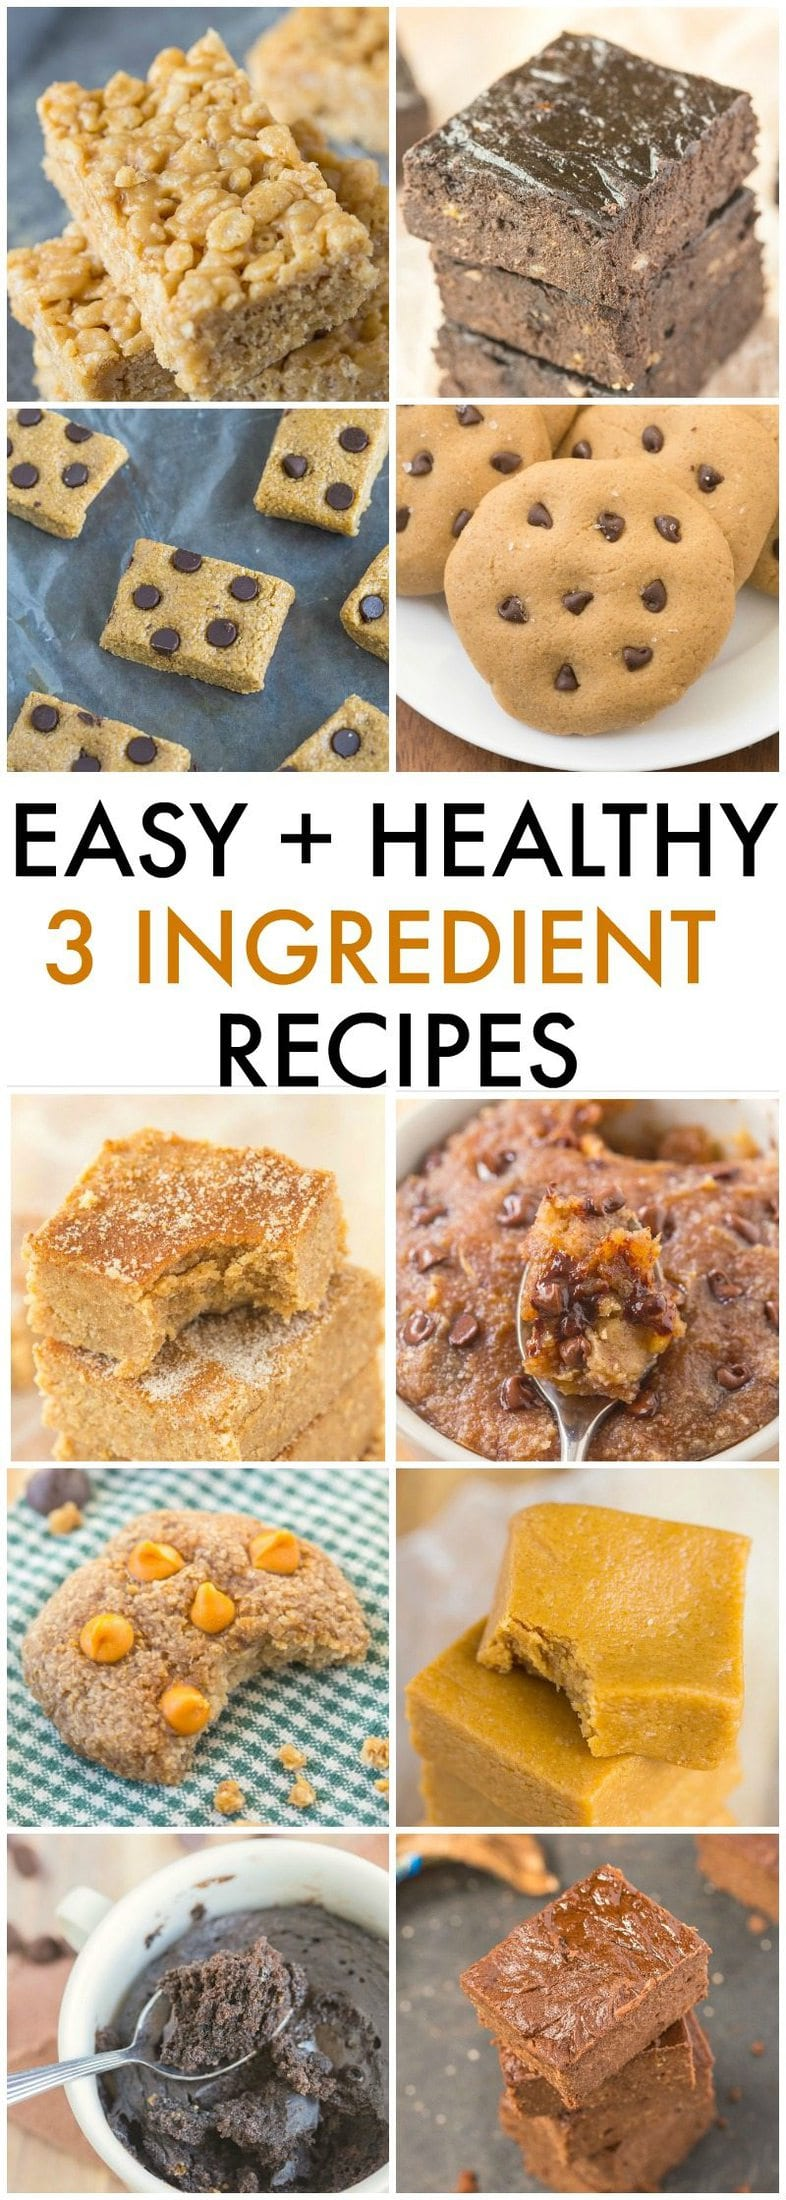 The Ultimate Easy and Healthy Recipes using just THREE ingredients- No nasties, no boxed mixes, nada- 100% delicious! {vegan, gluten free, paleo recipes}- thebigmansworld.com